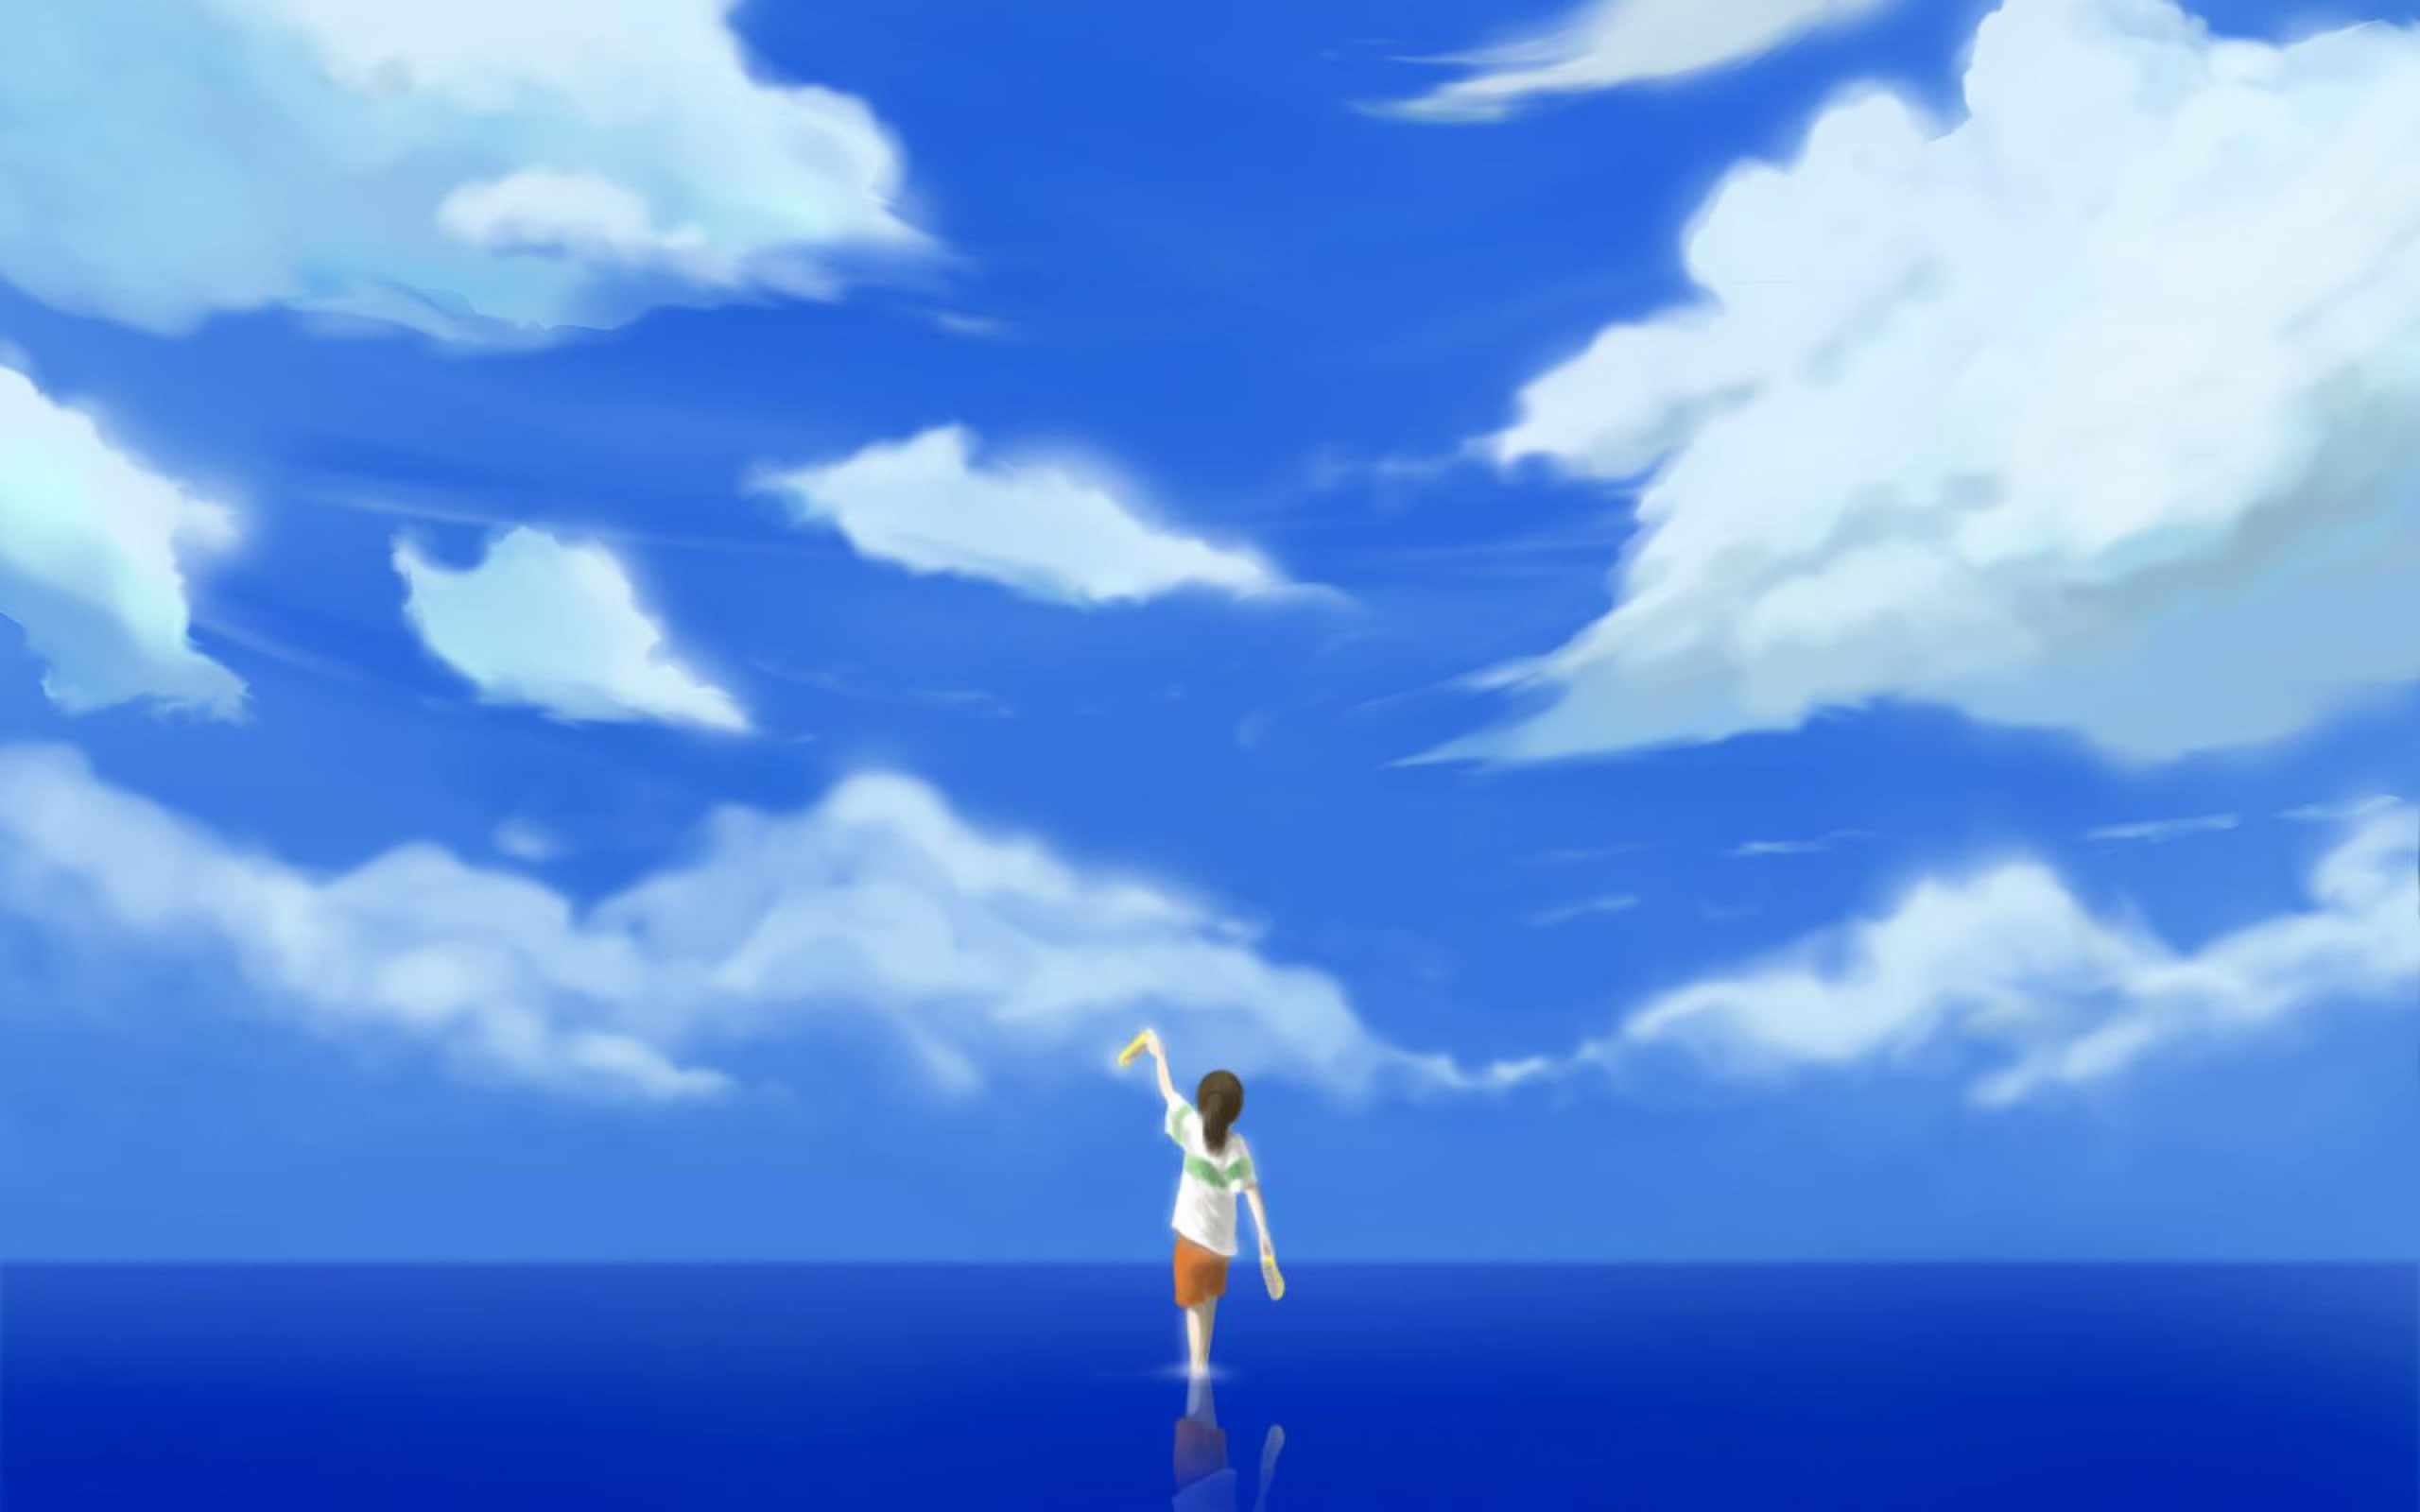 Spirited Away Sky 2533364 Hd Wallpaper Backgrounds Download